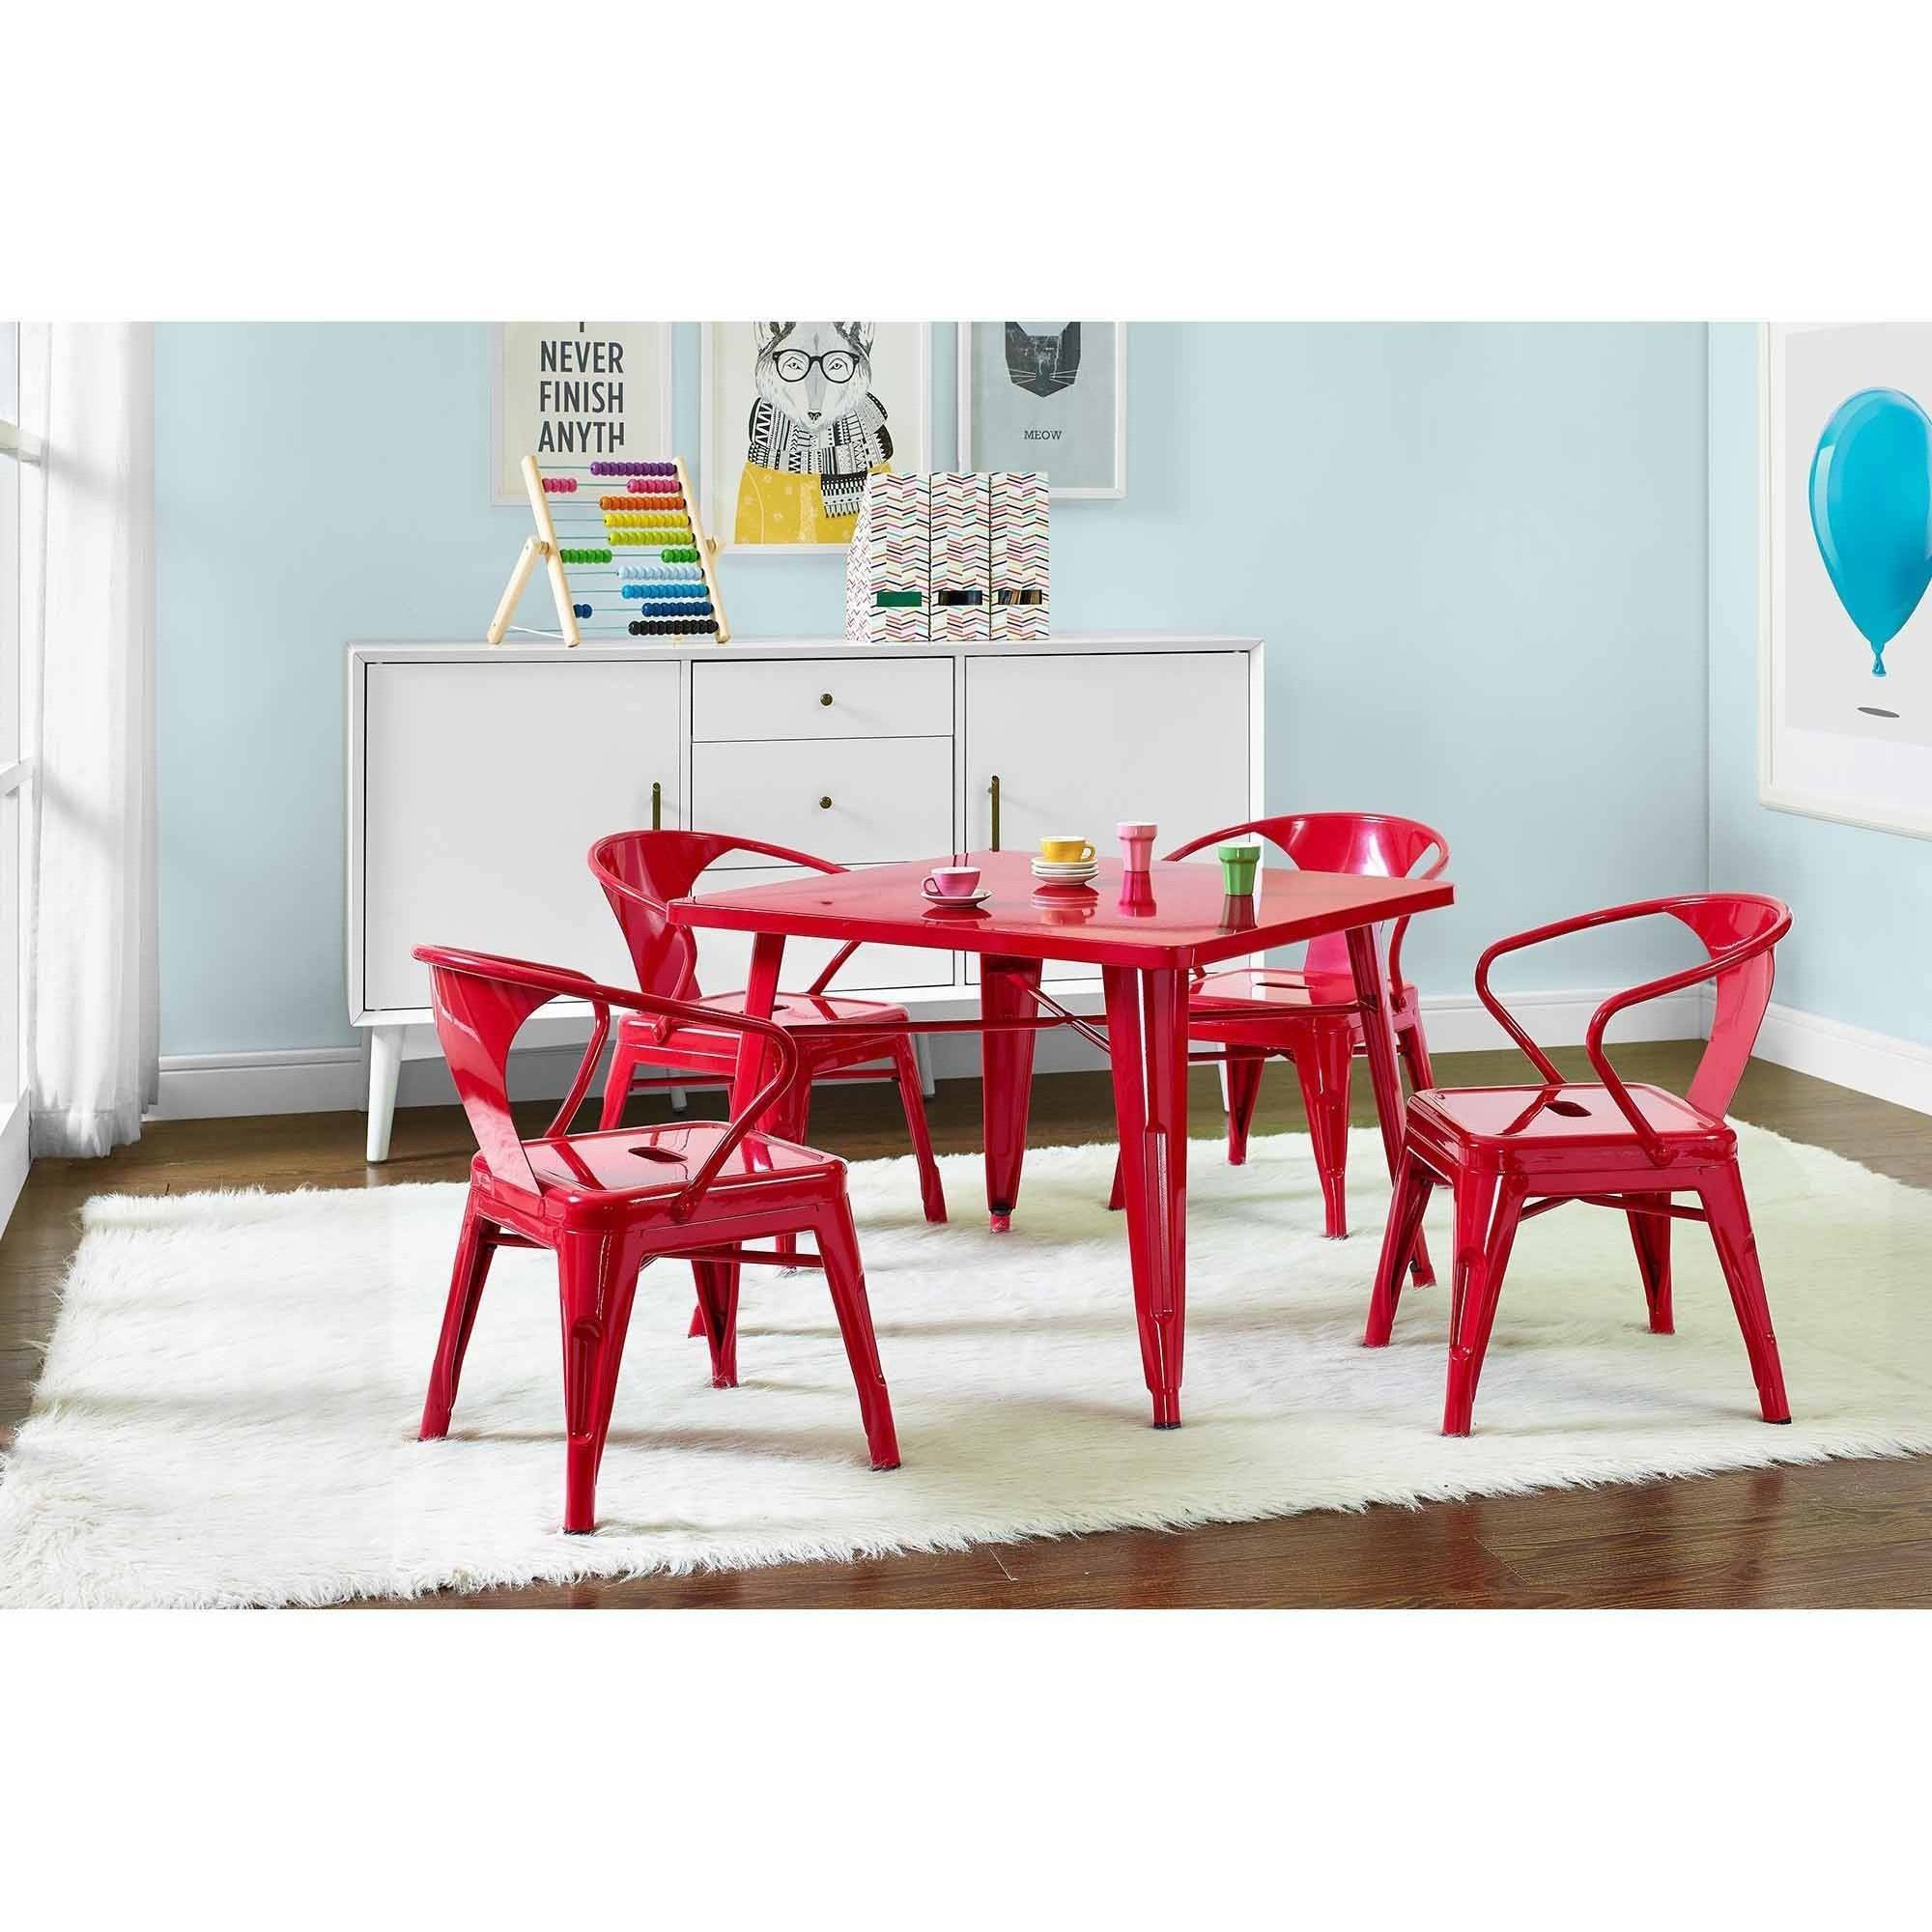 Better Homes And Gardens Kidsu0027 Metal Table, Multiple Colors   Walmart.com